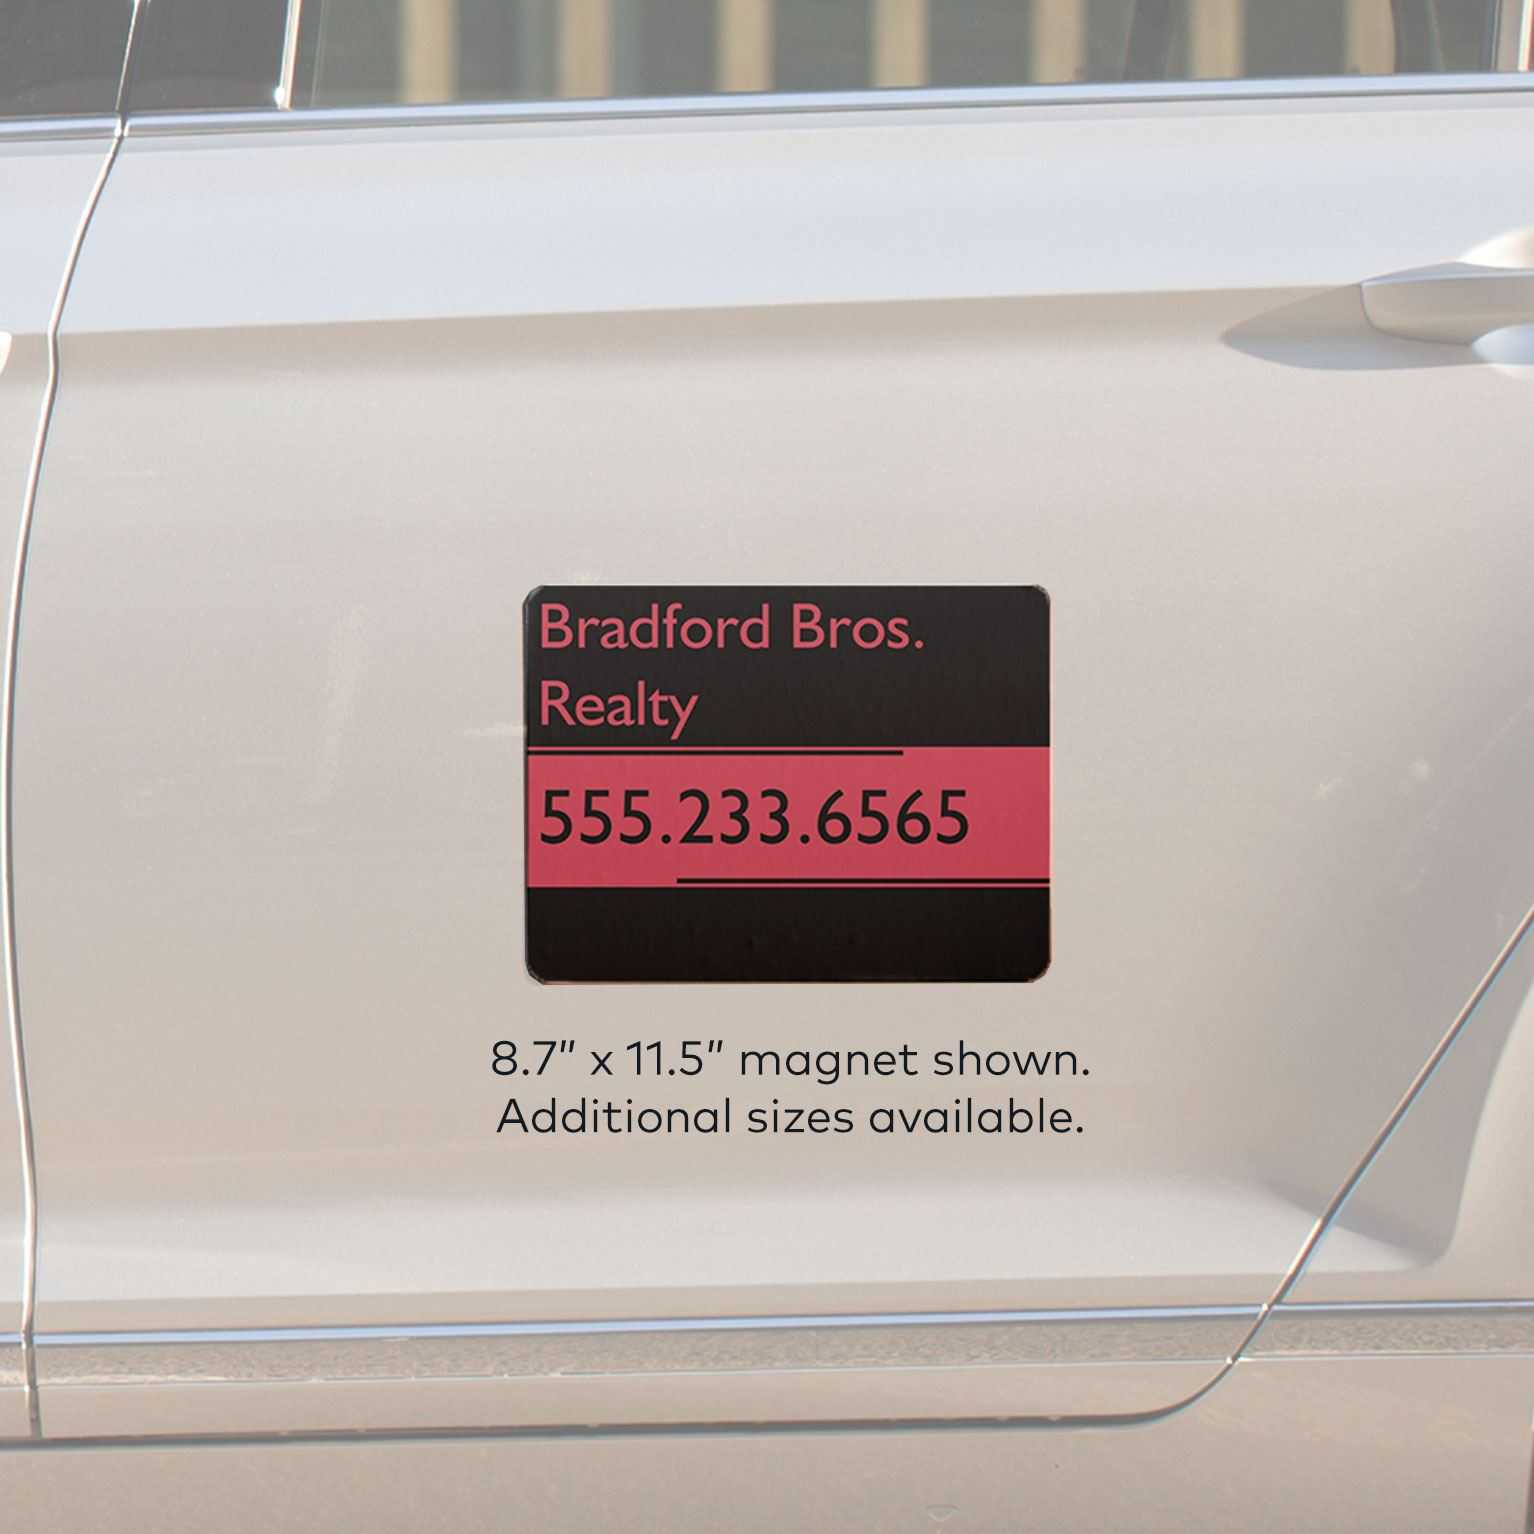 Meru Cabs Bill Template and Taxi Door Branding